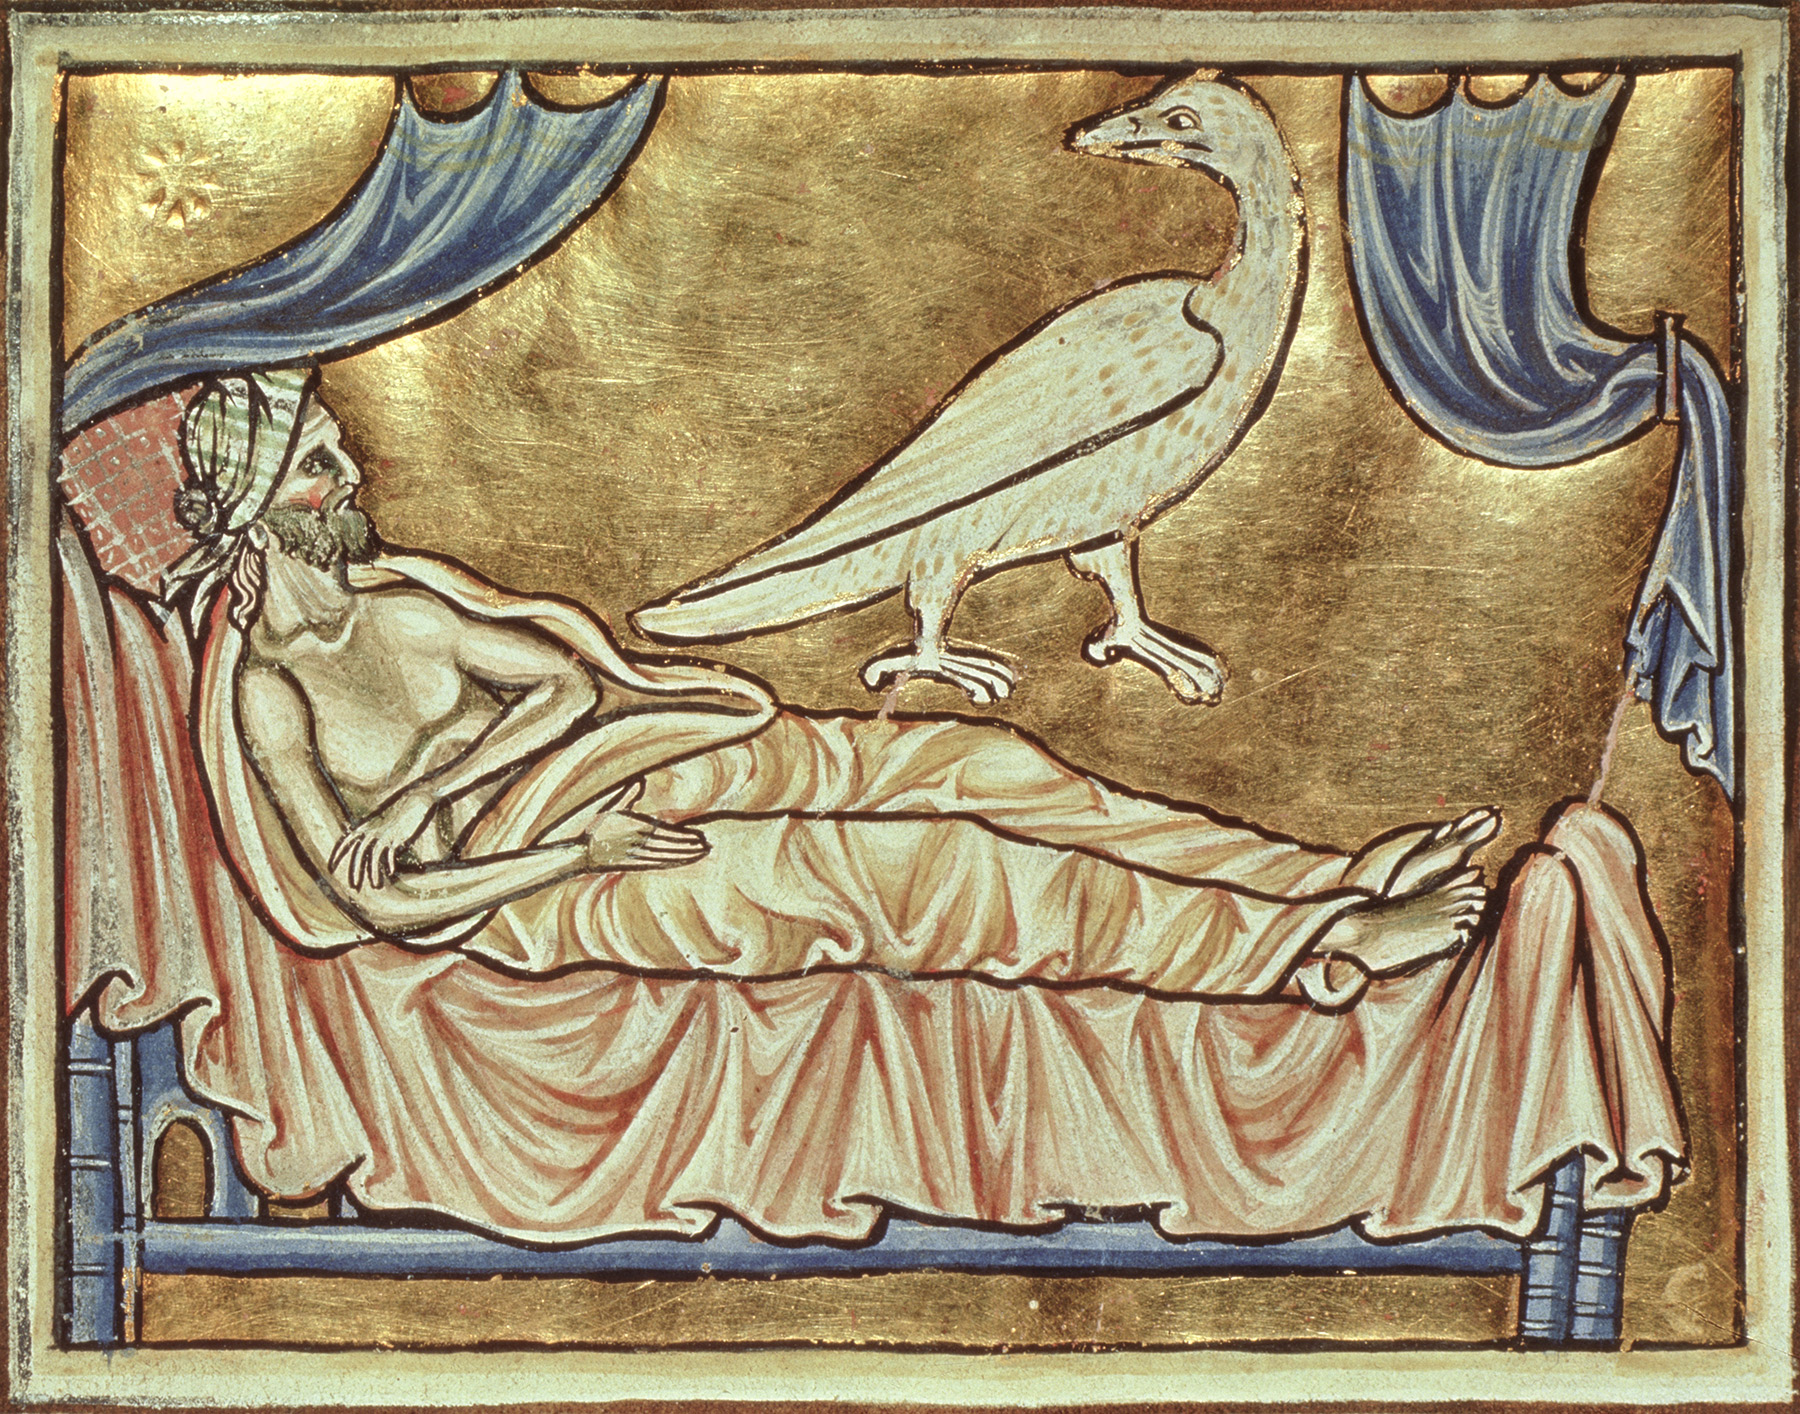 A caladrius bird, which foretold the fates of the sick, over a man in his bed, from a 13th-century copy of the 'Physiologus', Durham.